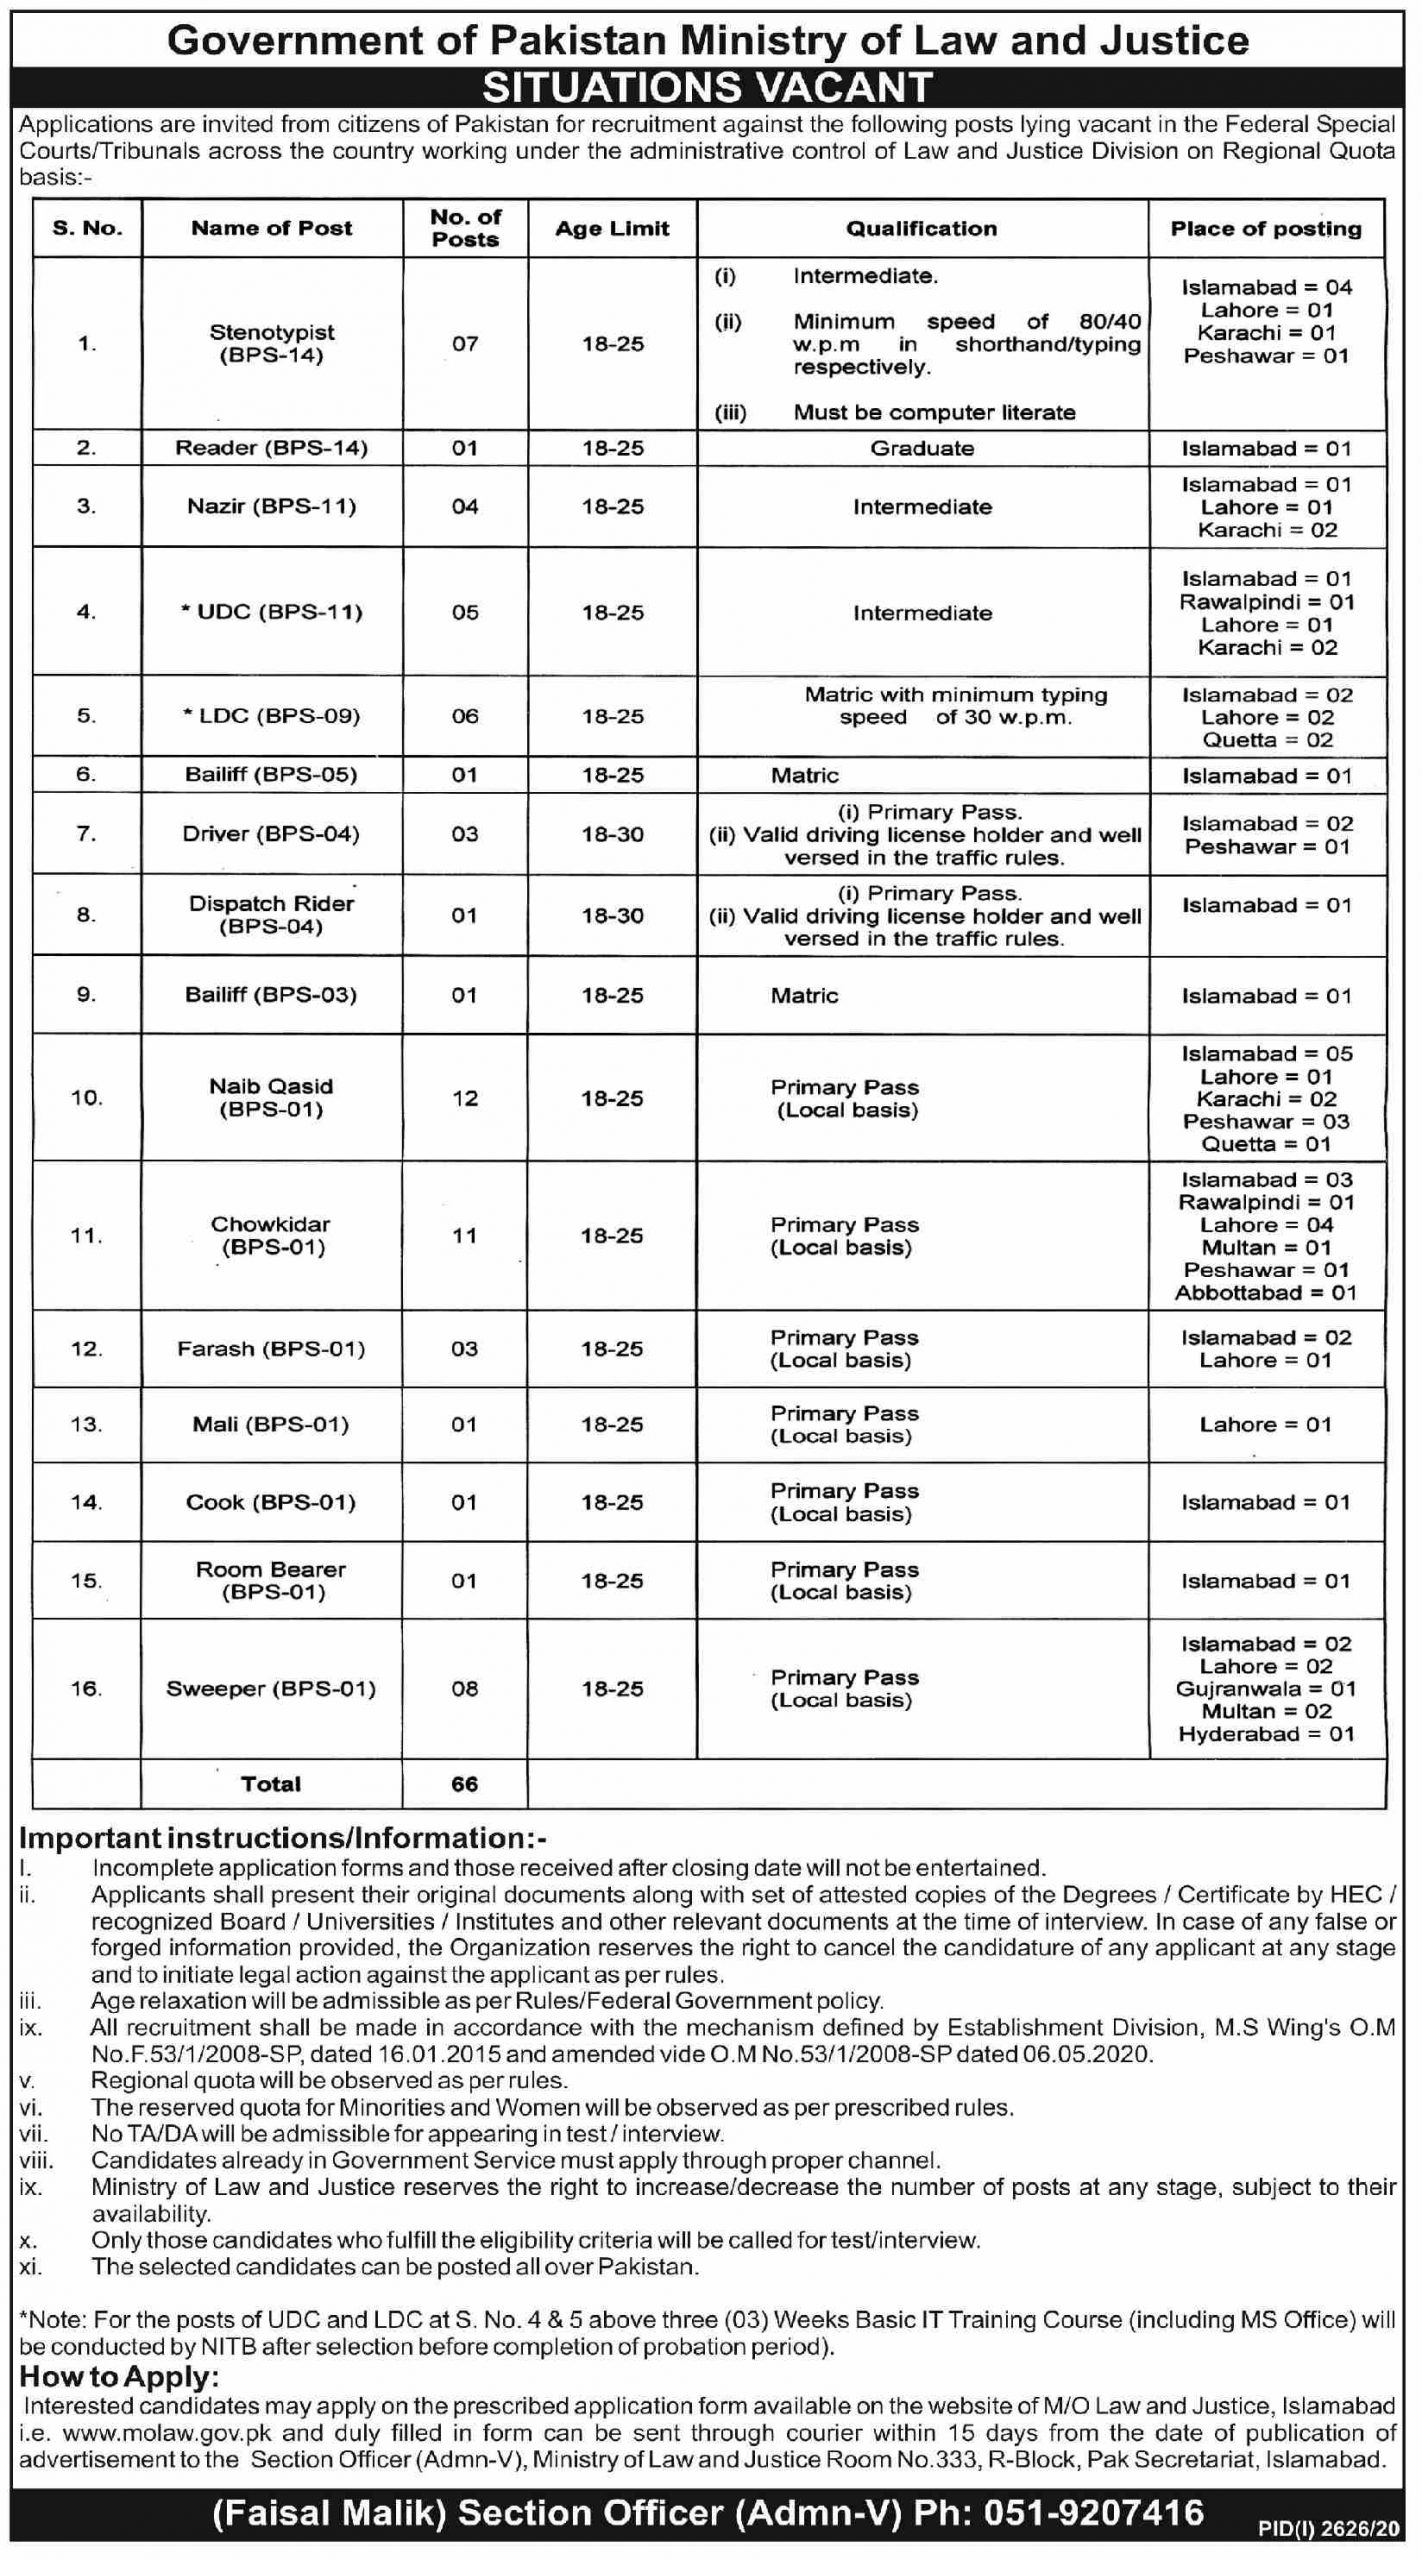 Ministry of Law and Justice Government of Pakistan Jobs November 2020